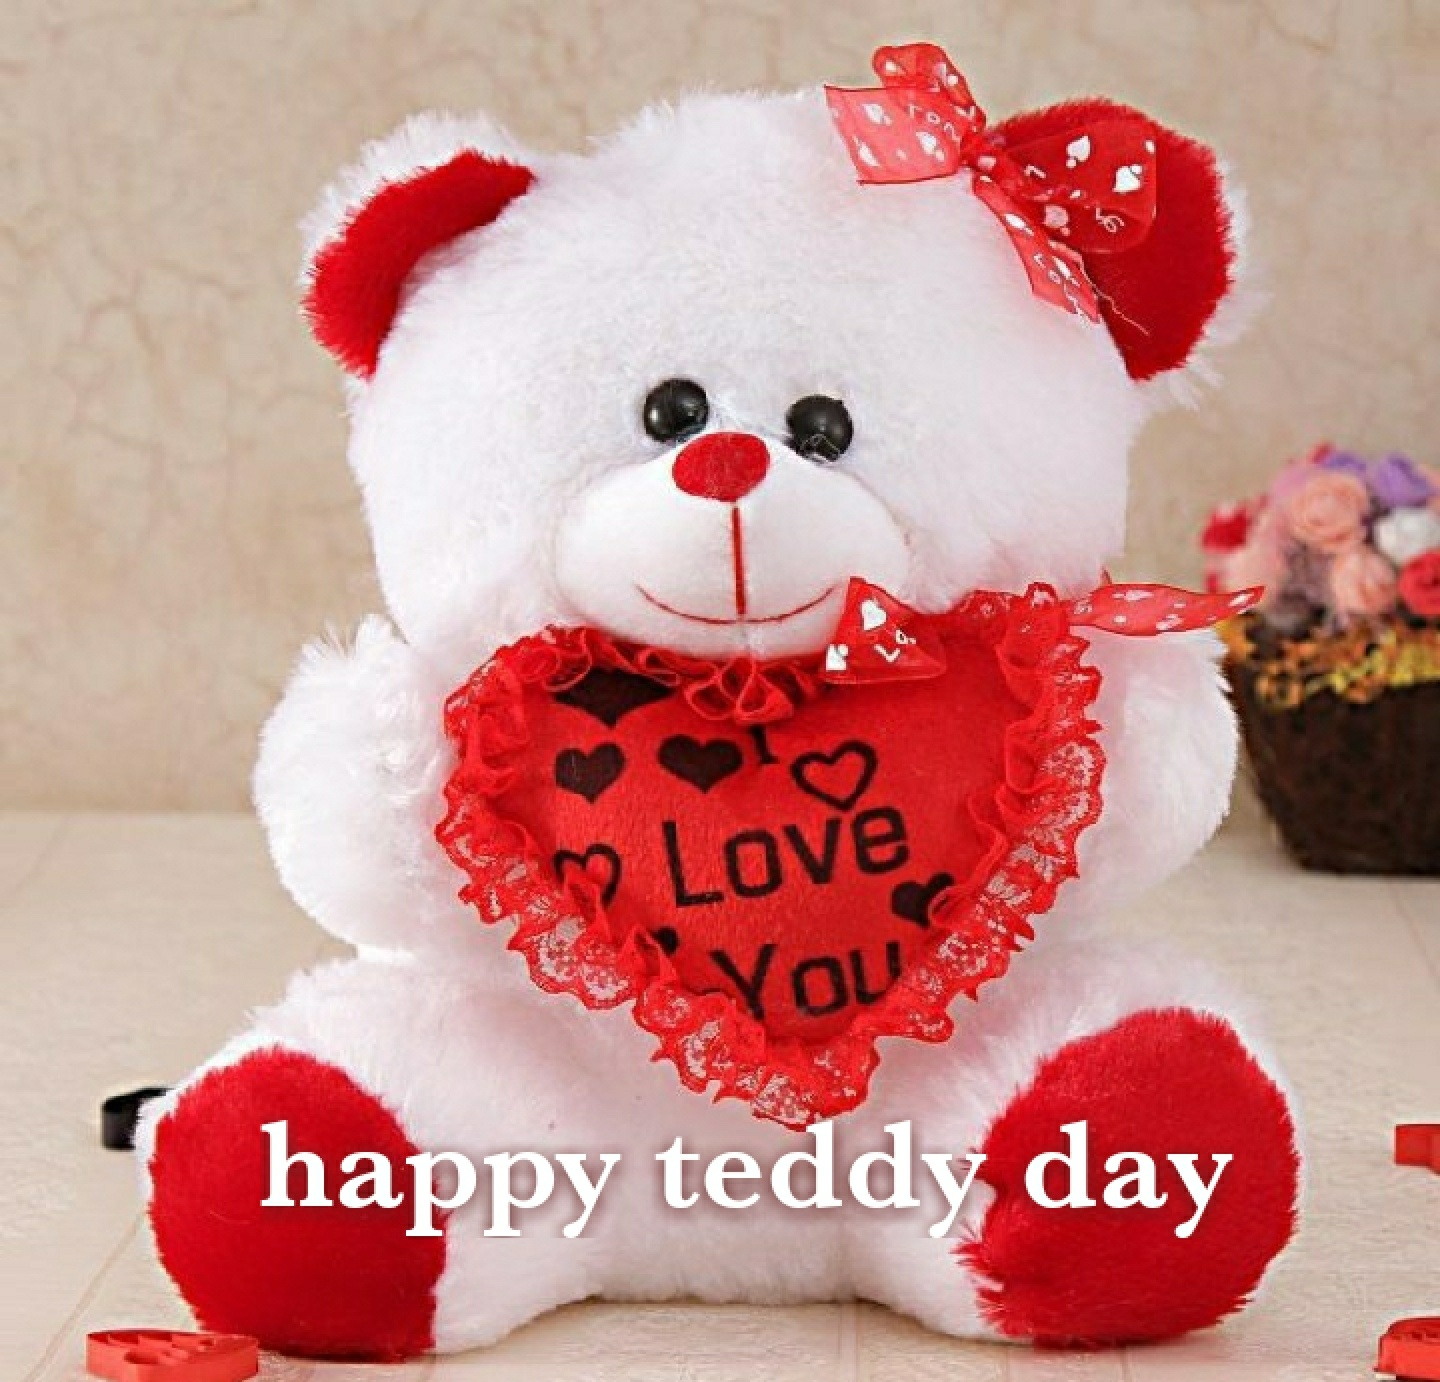 Happy Teddy Day 2019 Date Valentine Day Quotes